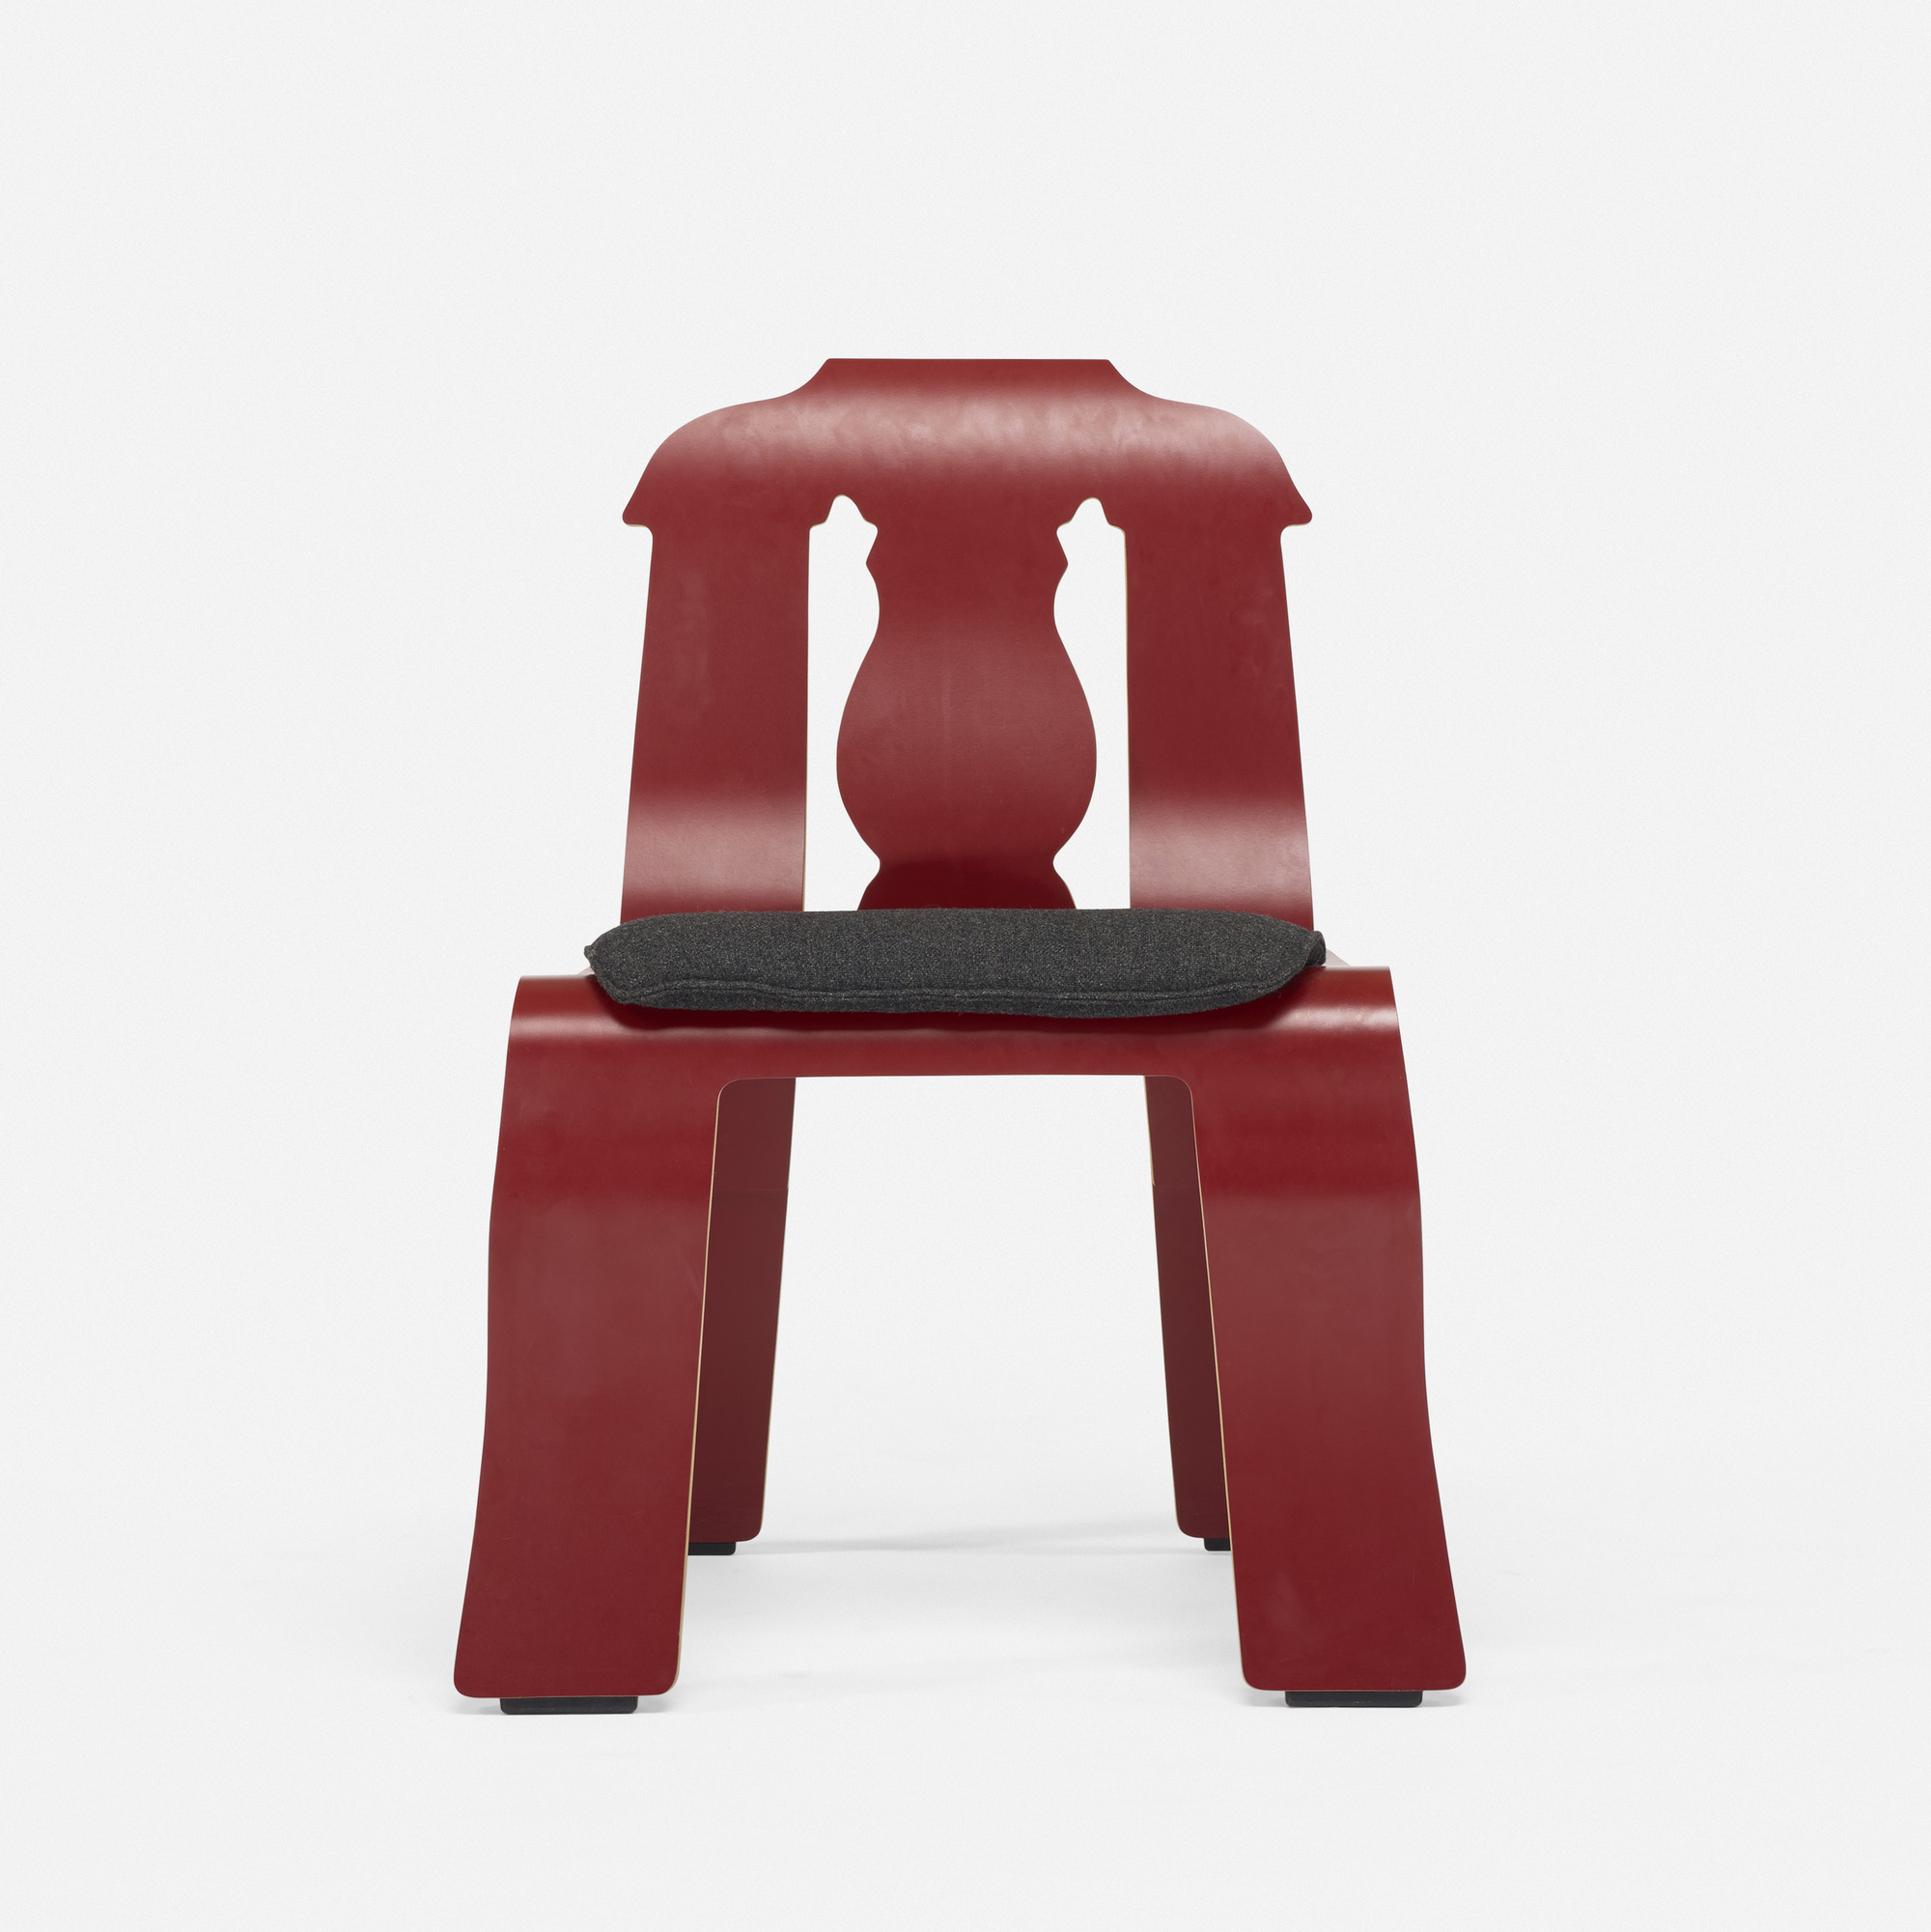 428: Robert Venturi / Empire chair (1 of 4)